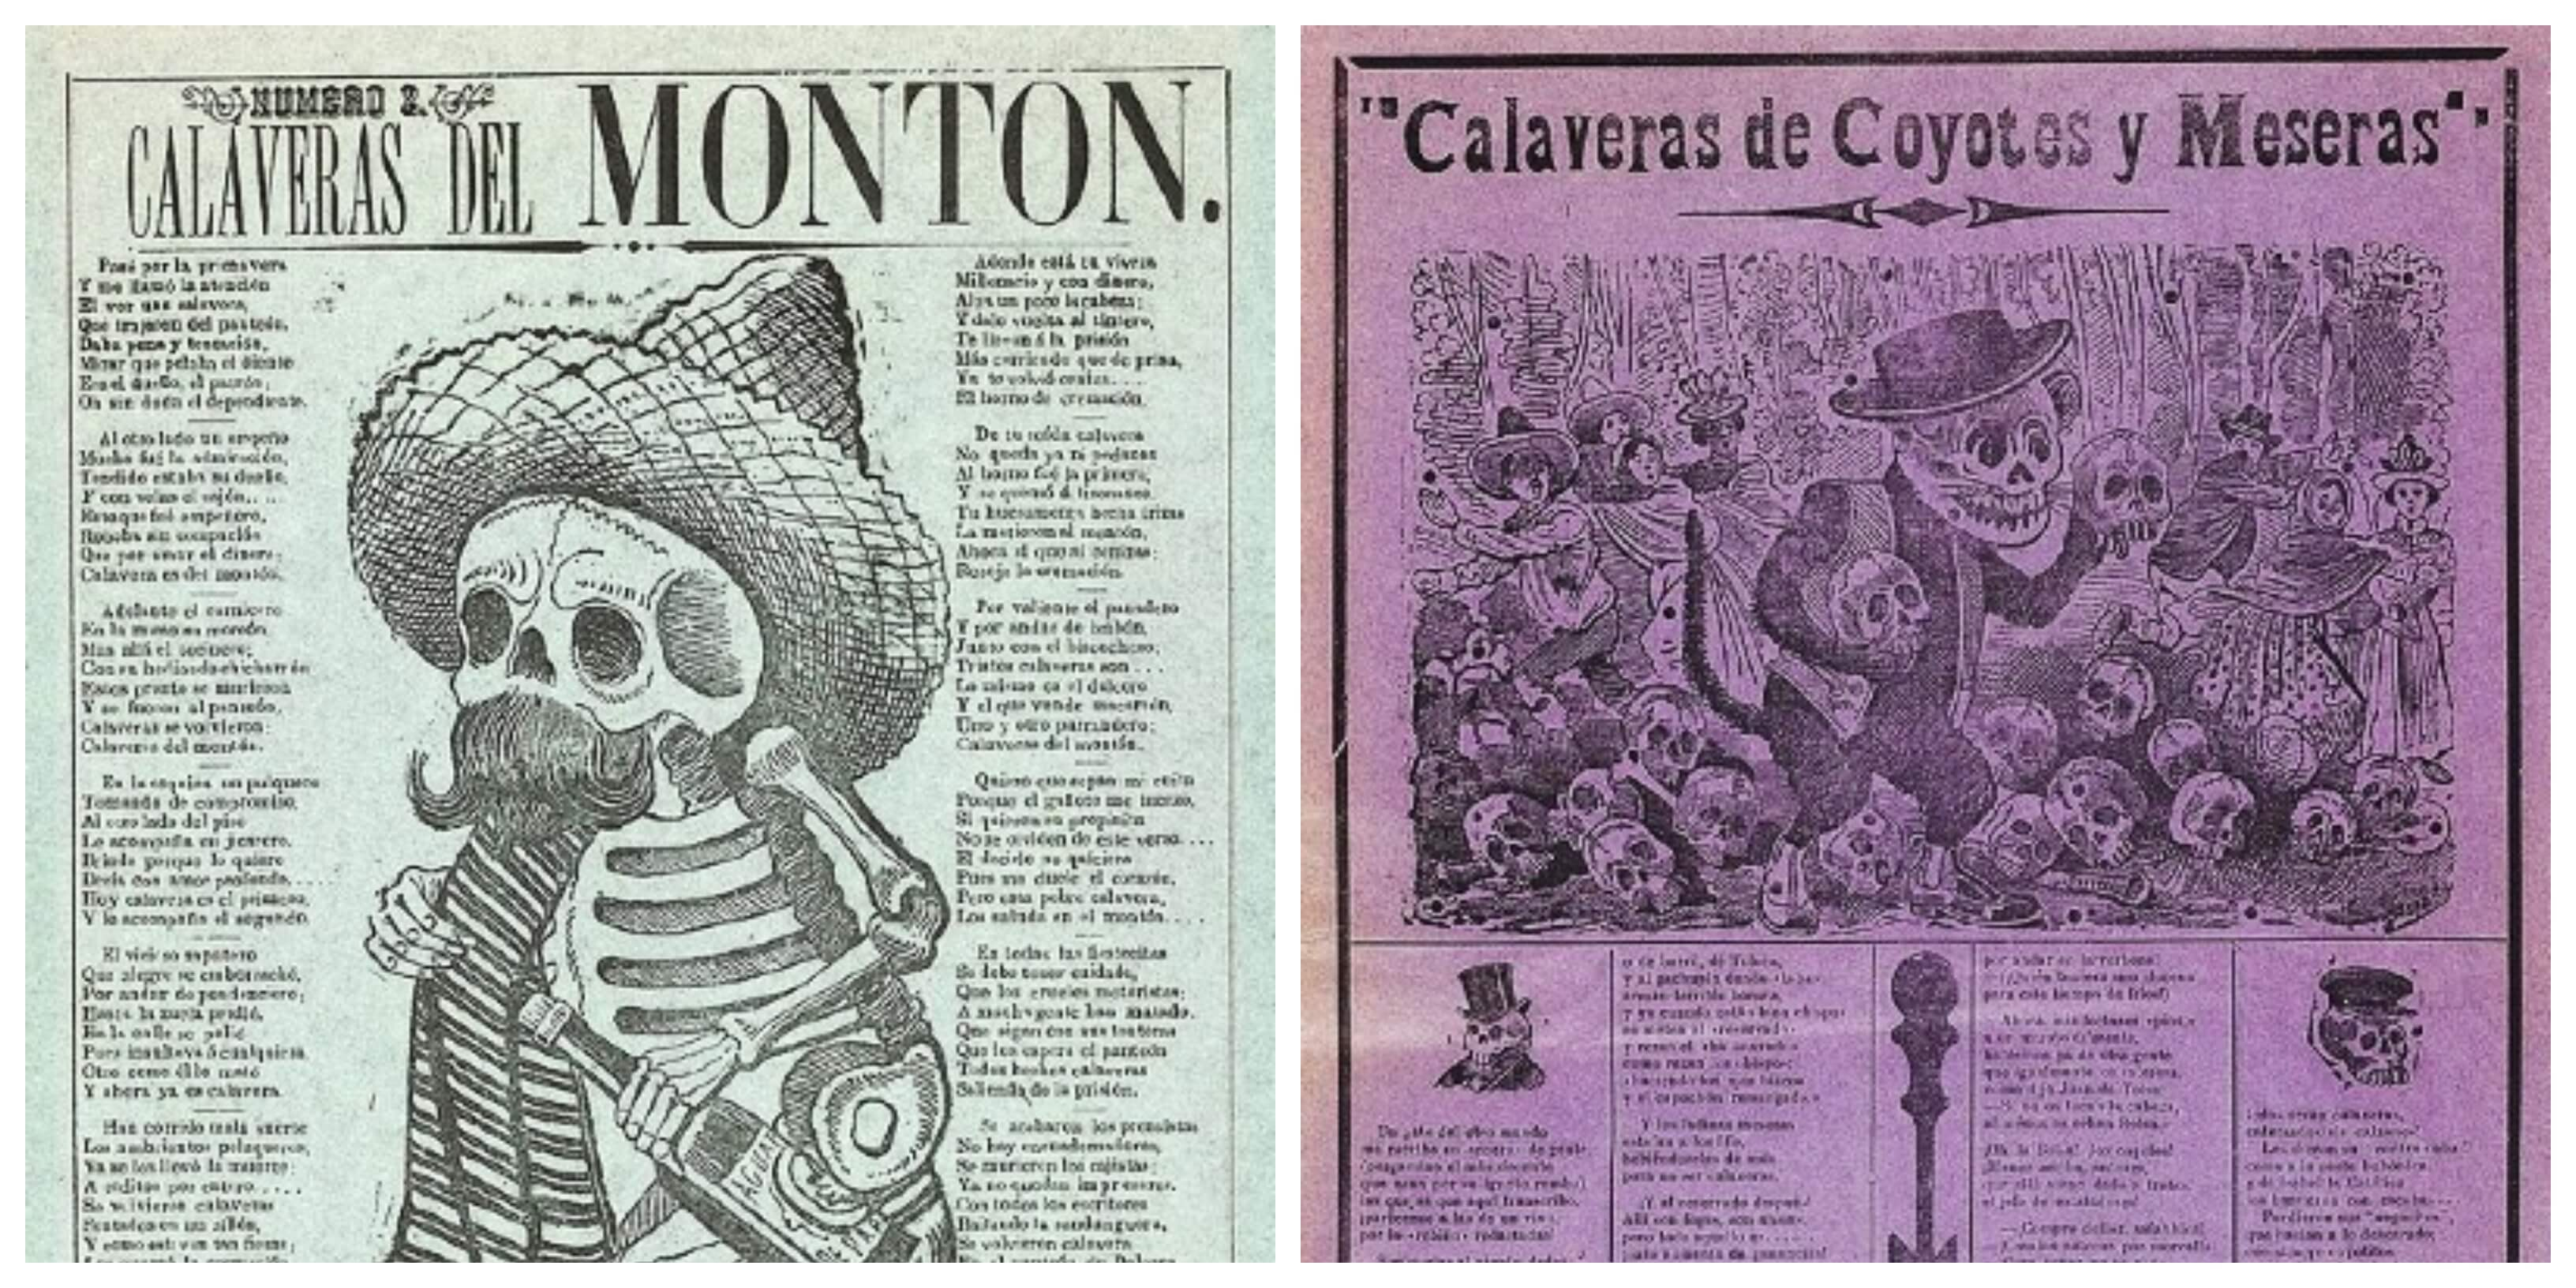 Collage of two prints of calaveras by José Guadalupe Posada depicting anthropomorphic skeletons, which inspired the design of costume and floats for Day of the Dead